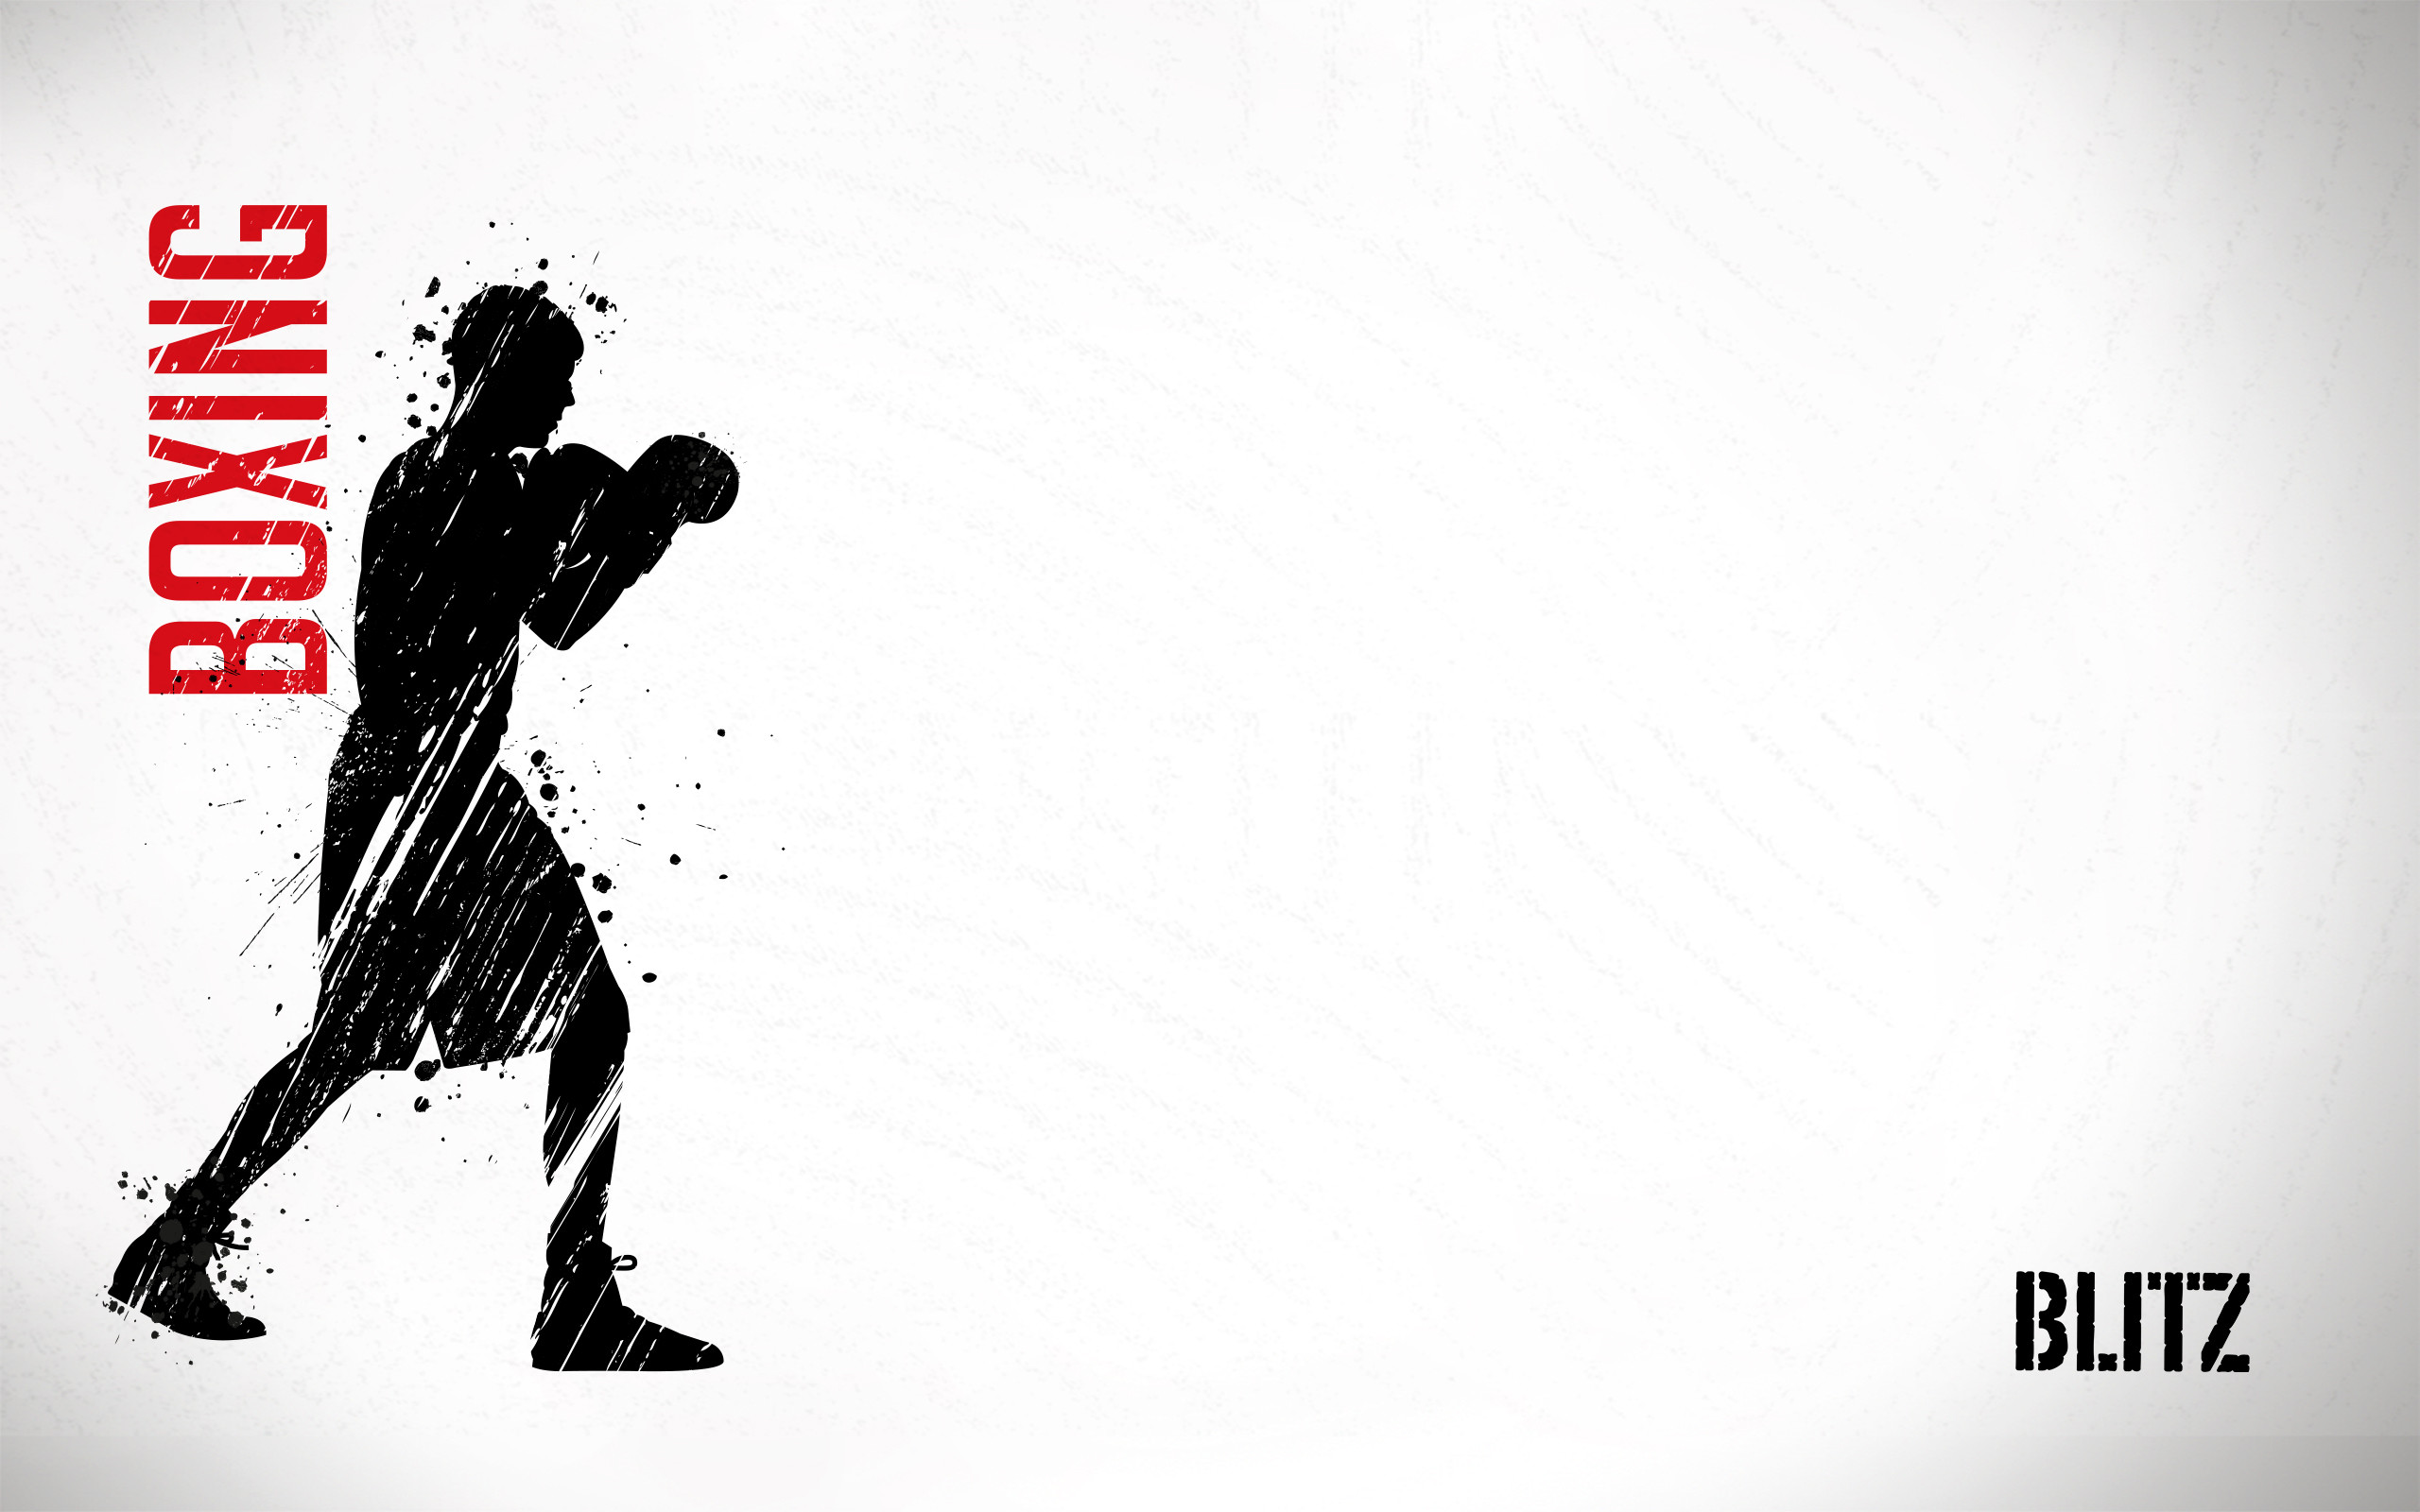 2560x1600 Blitz Boxing Wallpaper (2560 x 1600)